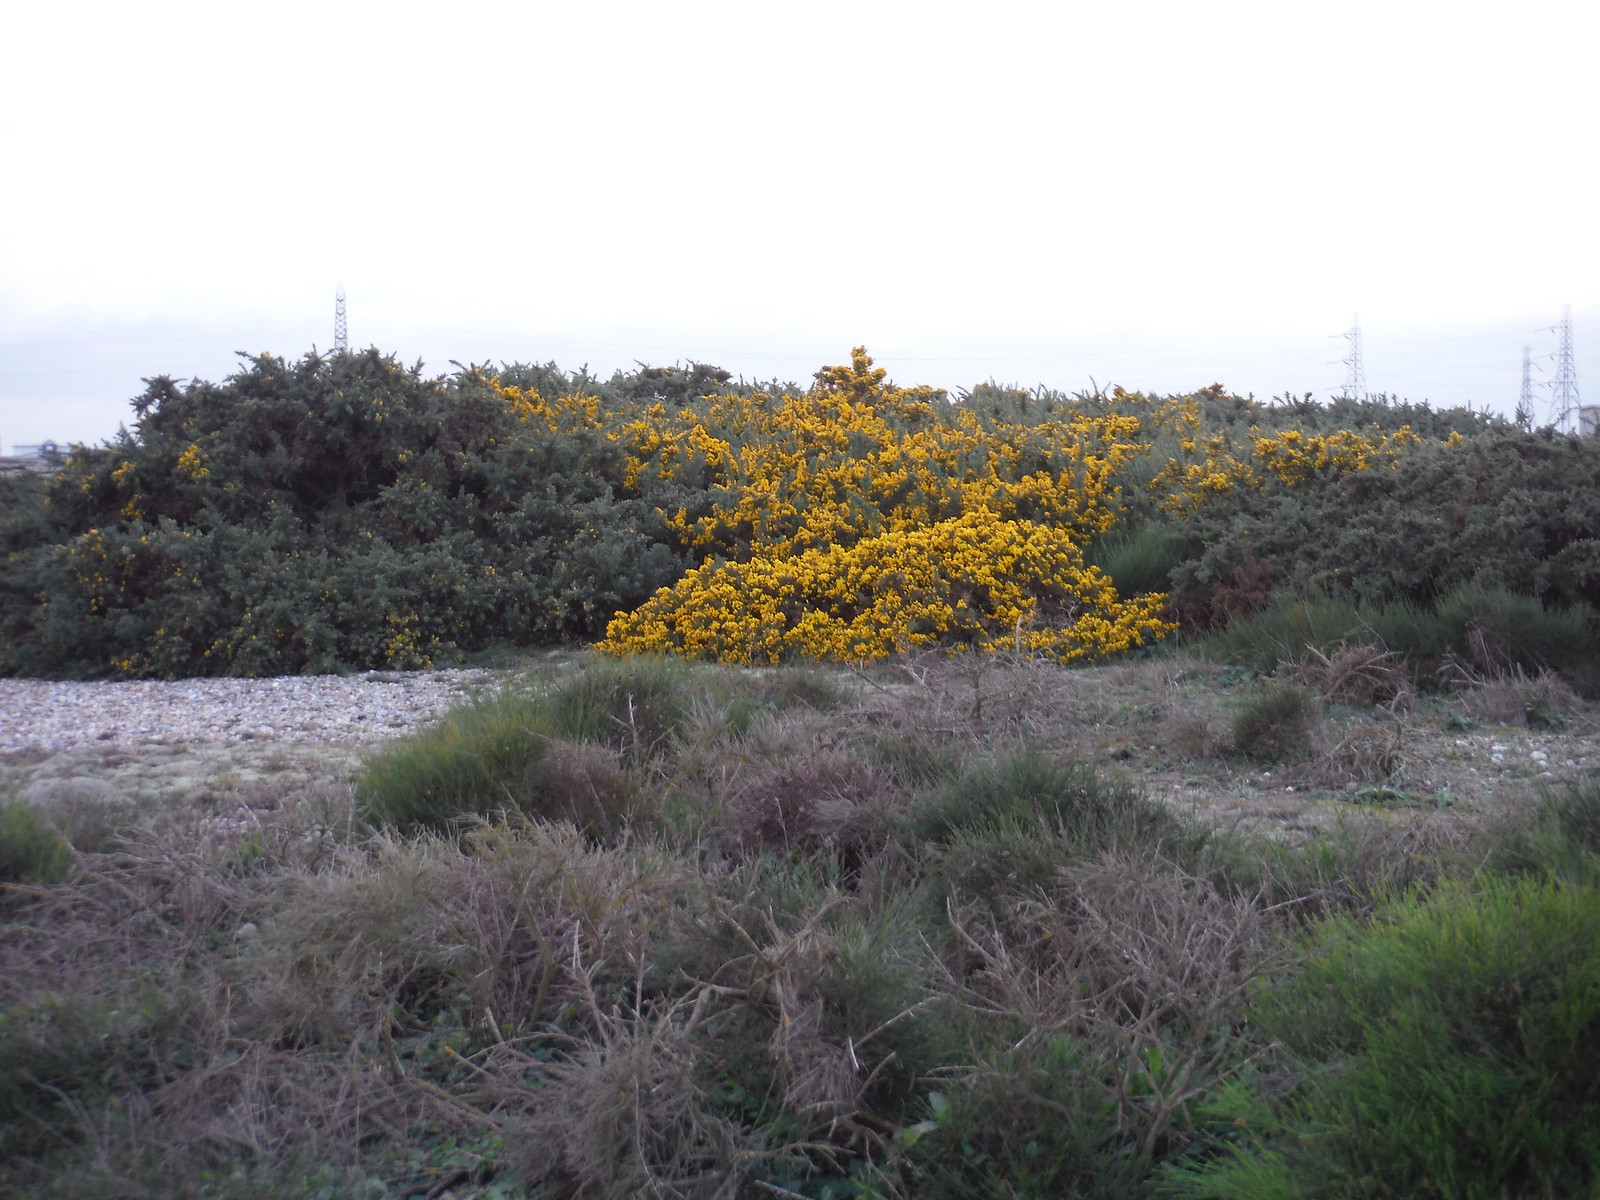 Broom Bush Patch, Dungeness NNR SWC 154 - Rye to Dungeness and Lydd-on-Sea or Lydd or Circular (Lydd Ending)